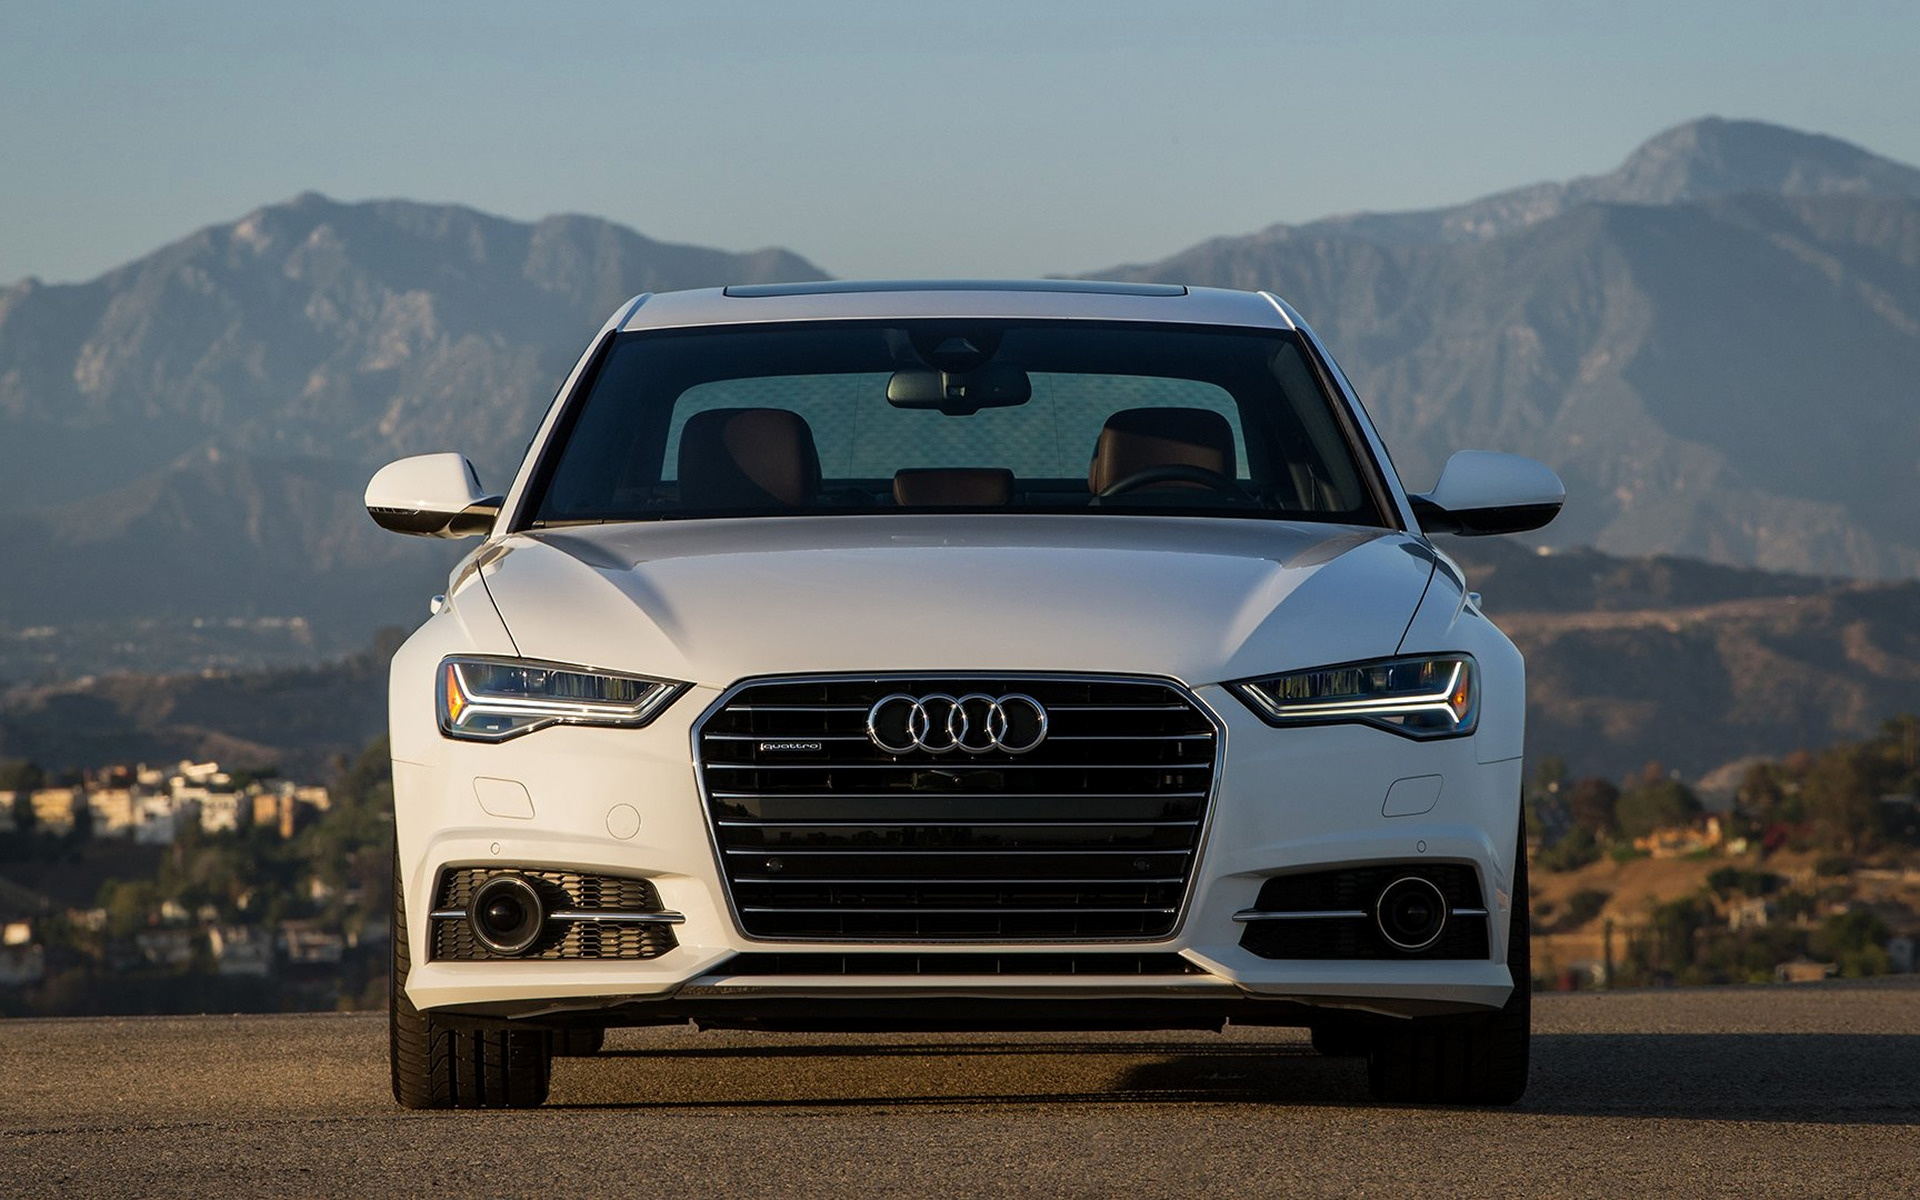 audi-a-sedan-Audi-A-Sedan-S-Line-Us-And-Hd-Images-for-Audi-A-Sedan-wallpaper-wp3602800